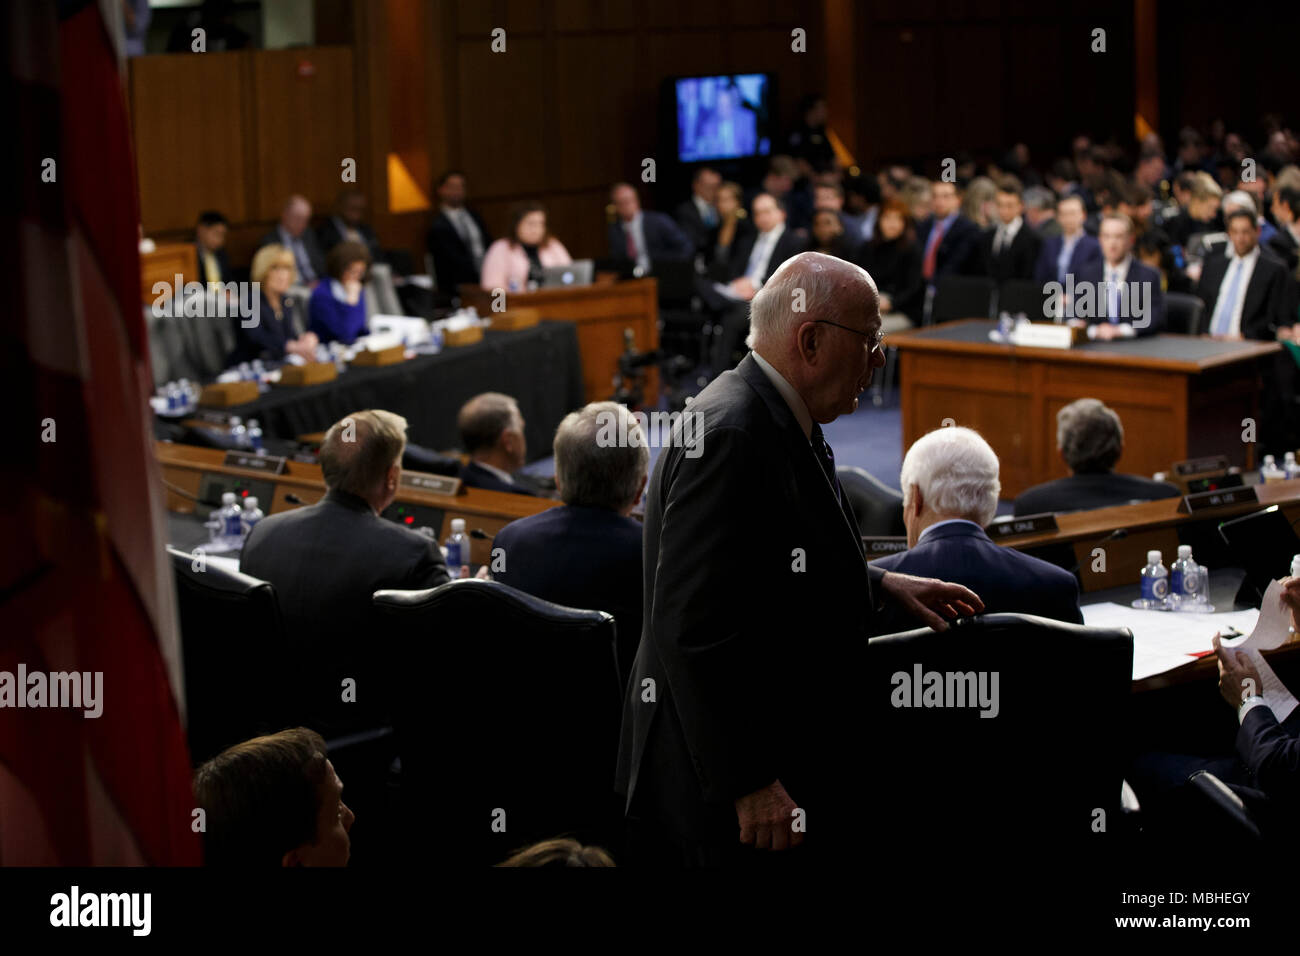 Washington, USA. 10th Apr, 2018. Senator Patrick Leahy, Democrat of Vermont, walks behind the dais as Facebook CEO Mark Zuckerberg testifies before the United States Senate on Capitol Hill in Washington, DC on April 10, 2018. Credit: The Photo Access/Alamy Live News Stock Photo